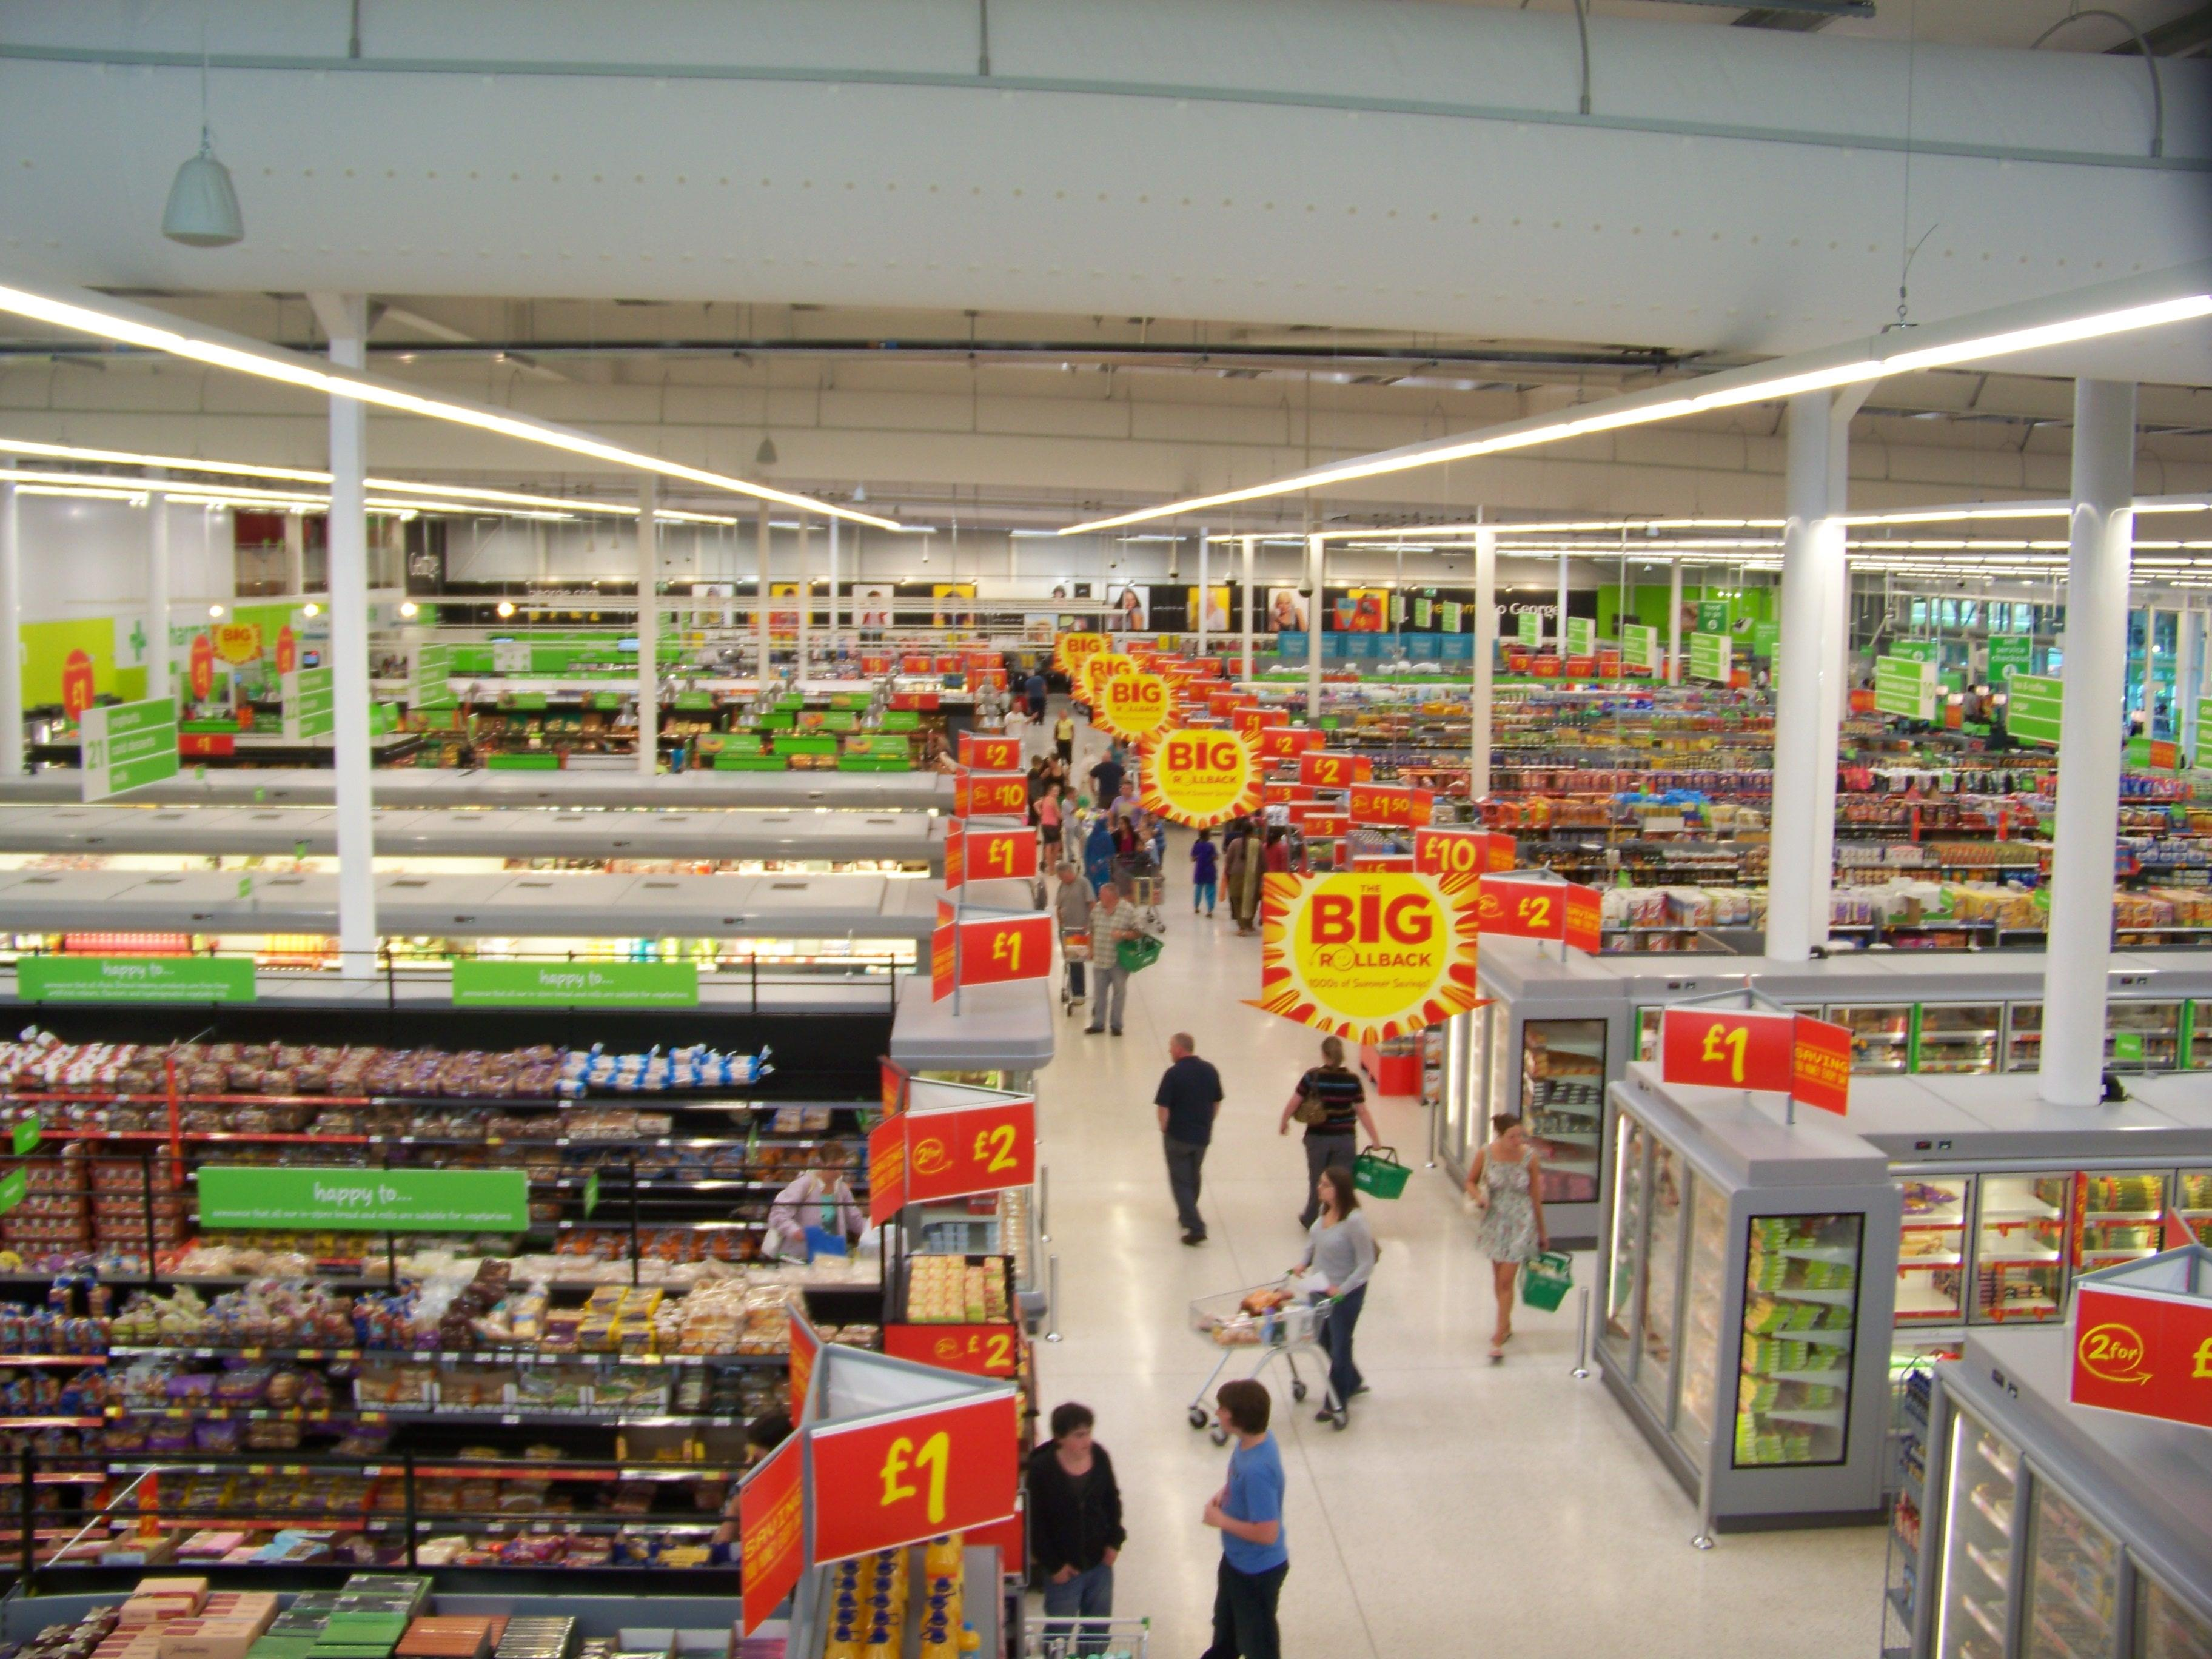 How much is living near a supermarket worth?